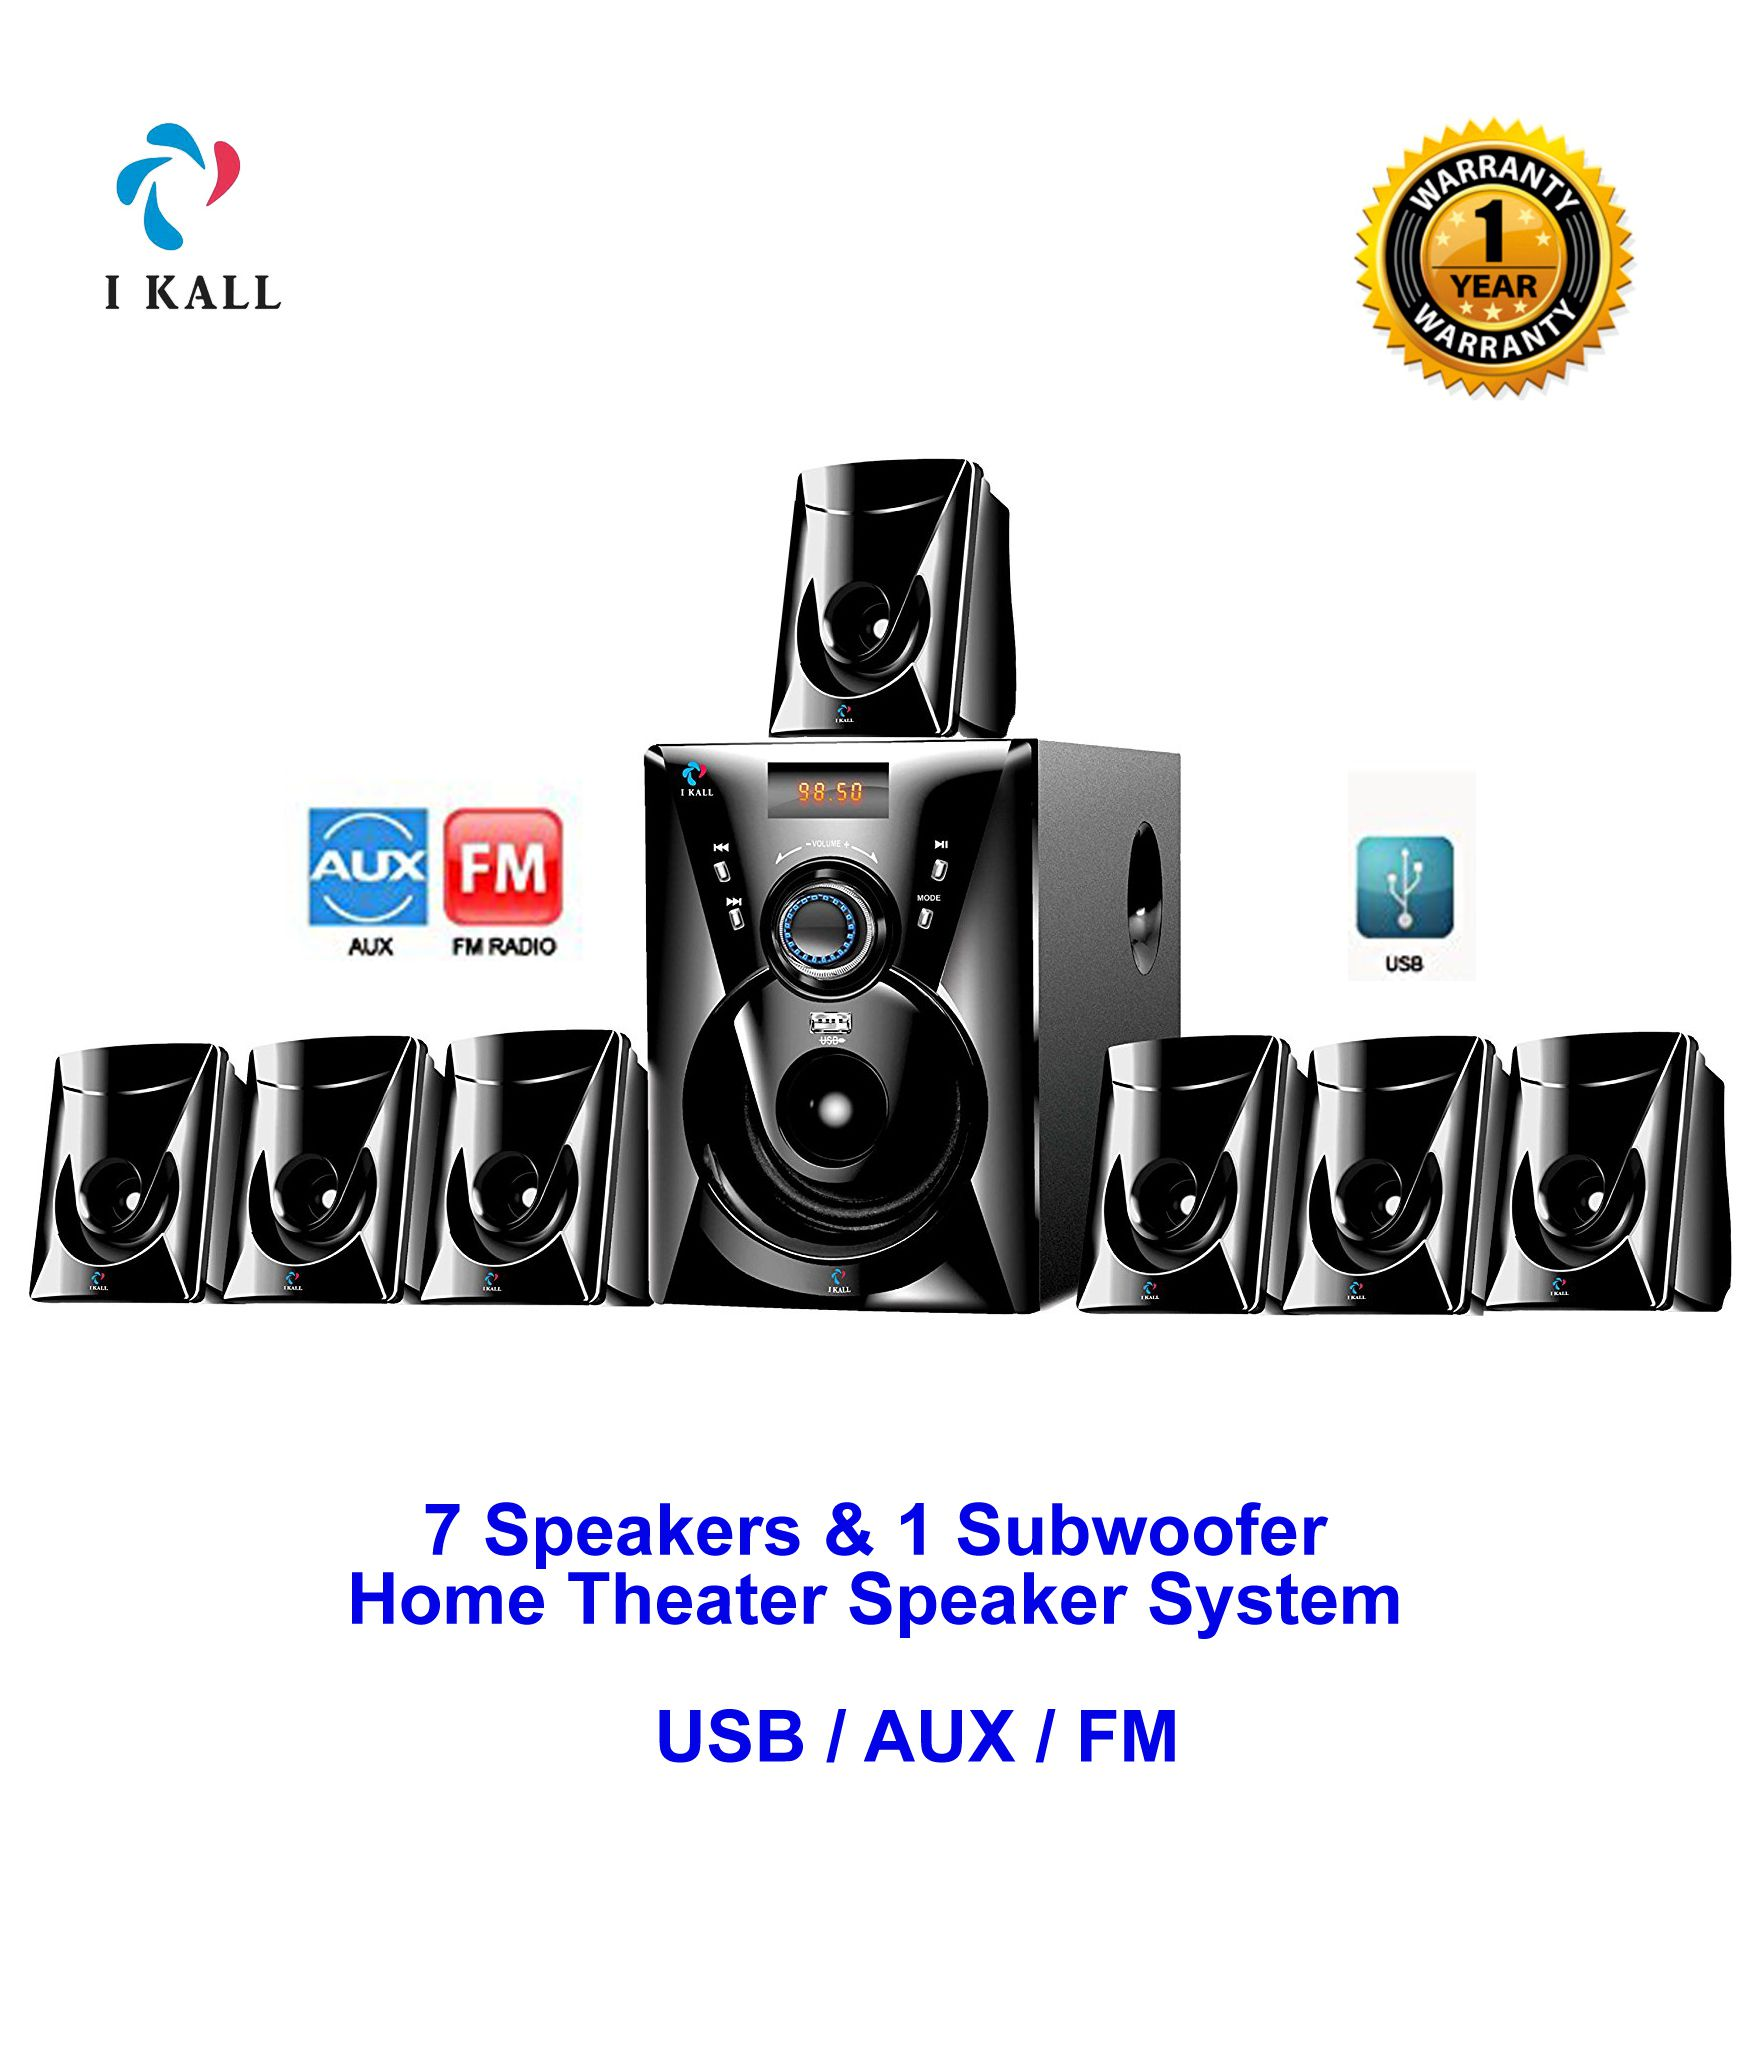 buy i kall 7 1 speaker 7000w pmpo component home theatre system